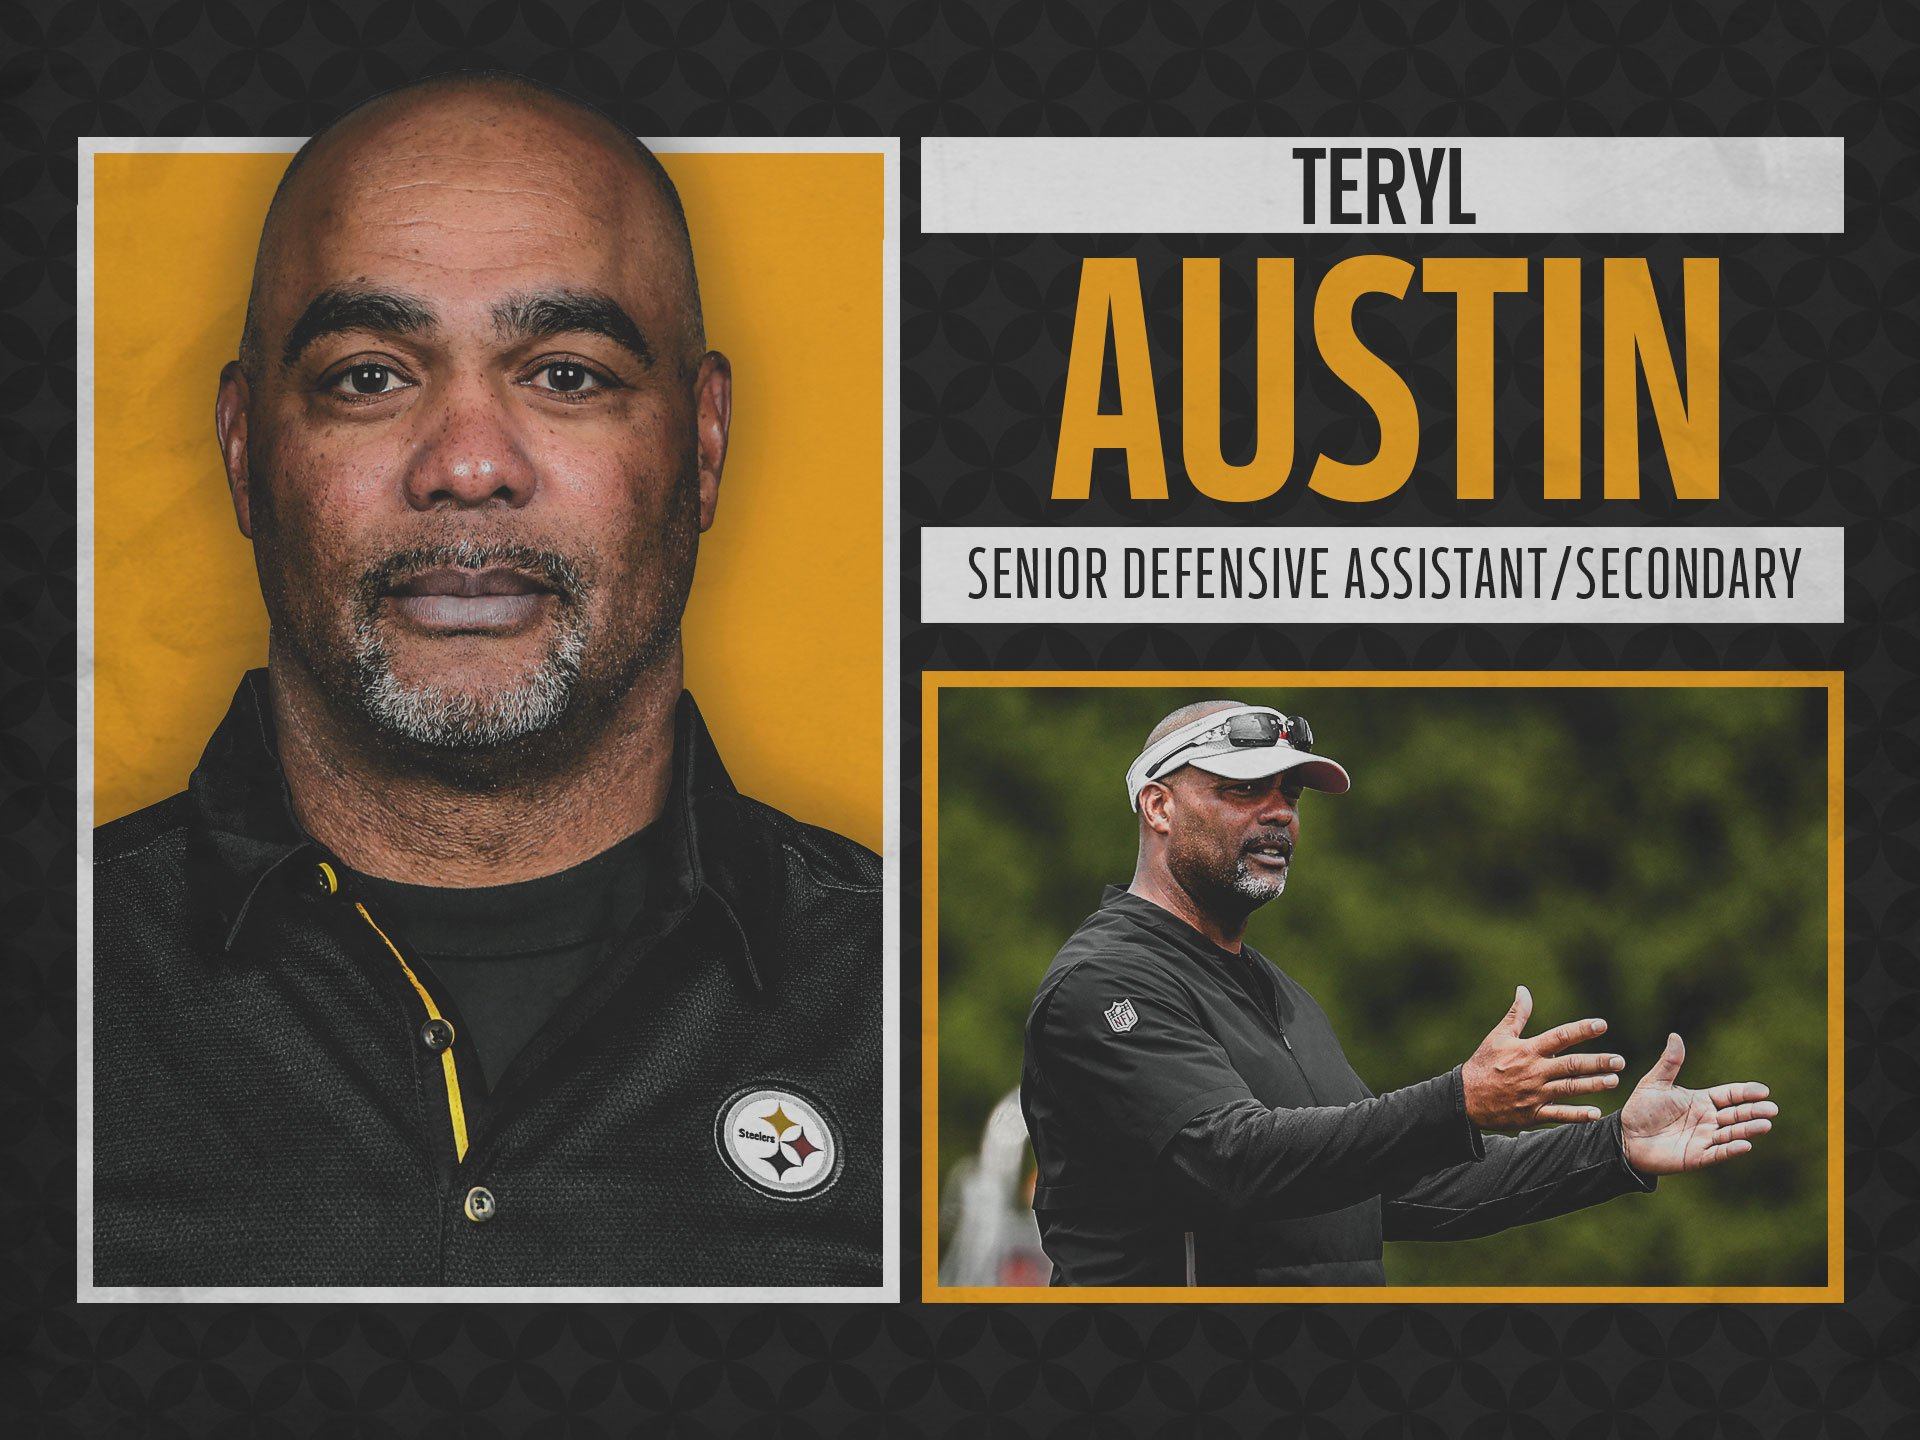 We have hired Teryl Austin as senior defensive assistant/secondary.  MORE: https://t.co/PlpiGzW1rW https://t.co/ggUDbfVZAu